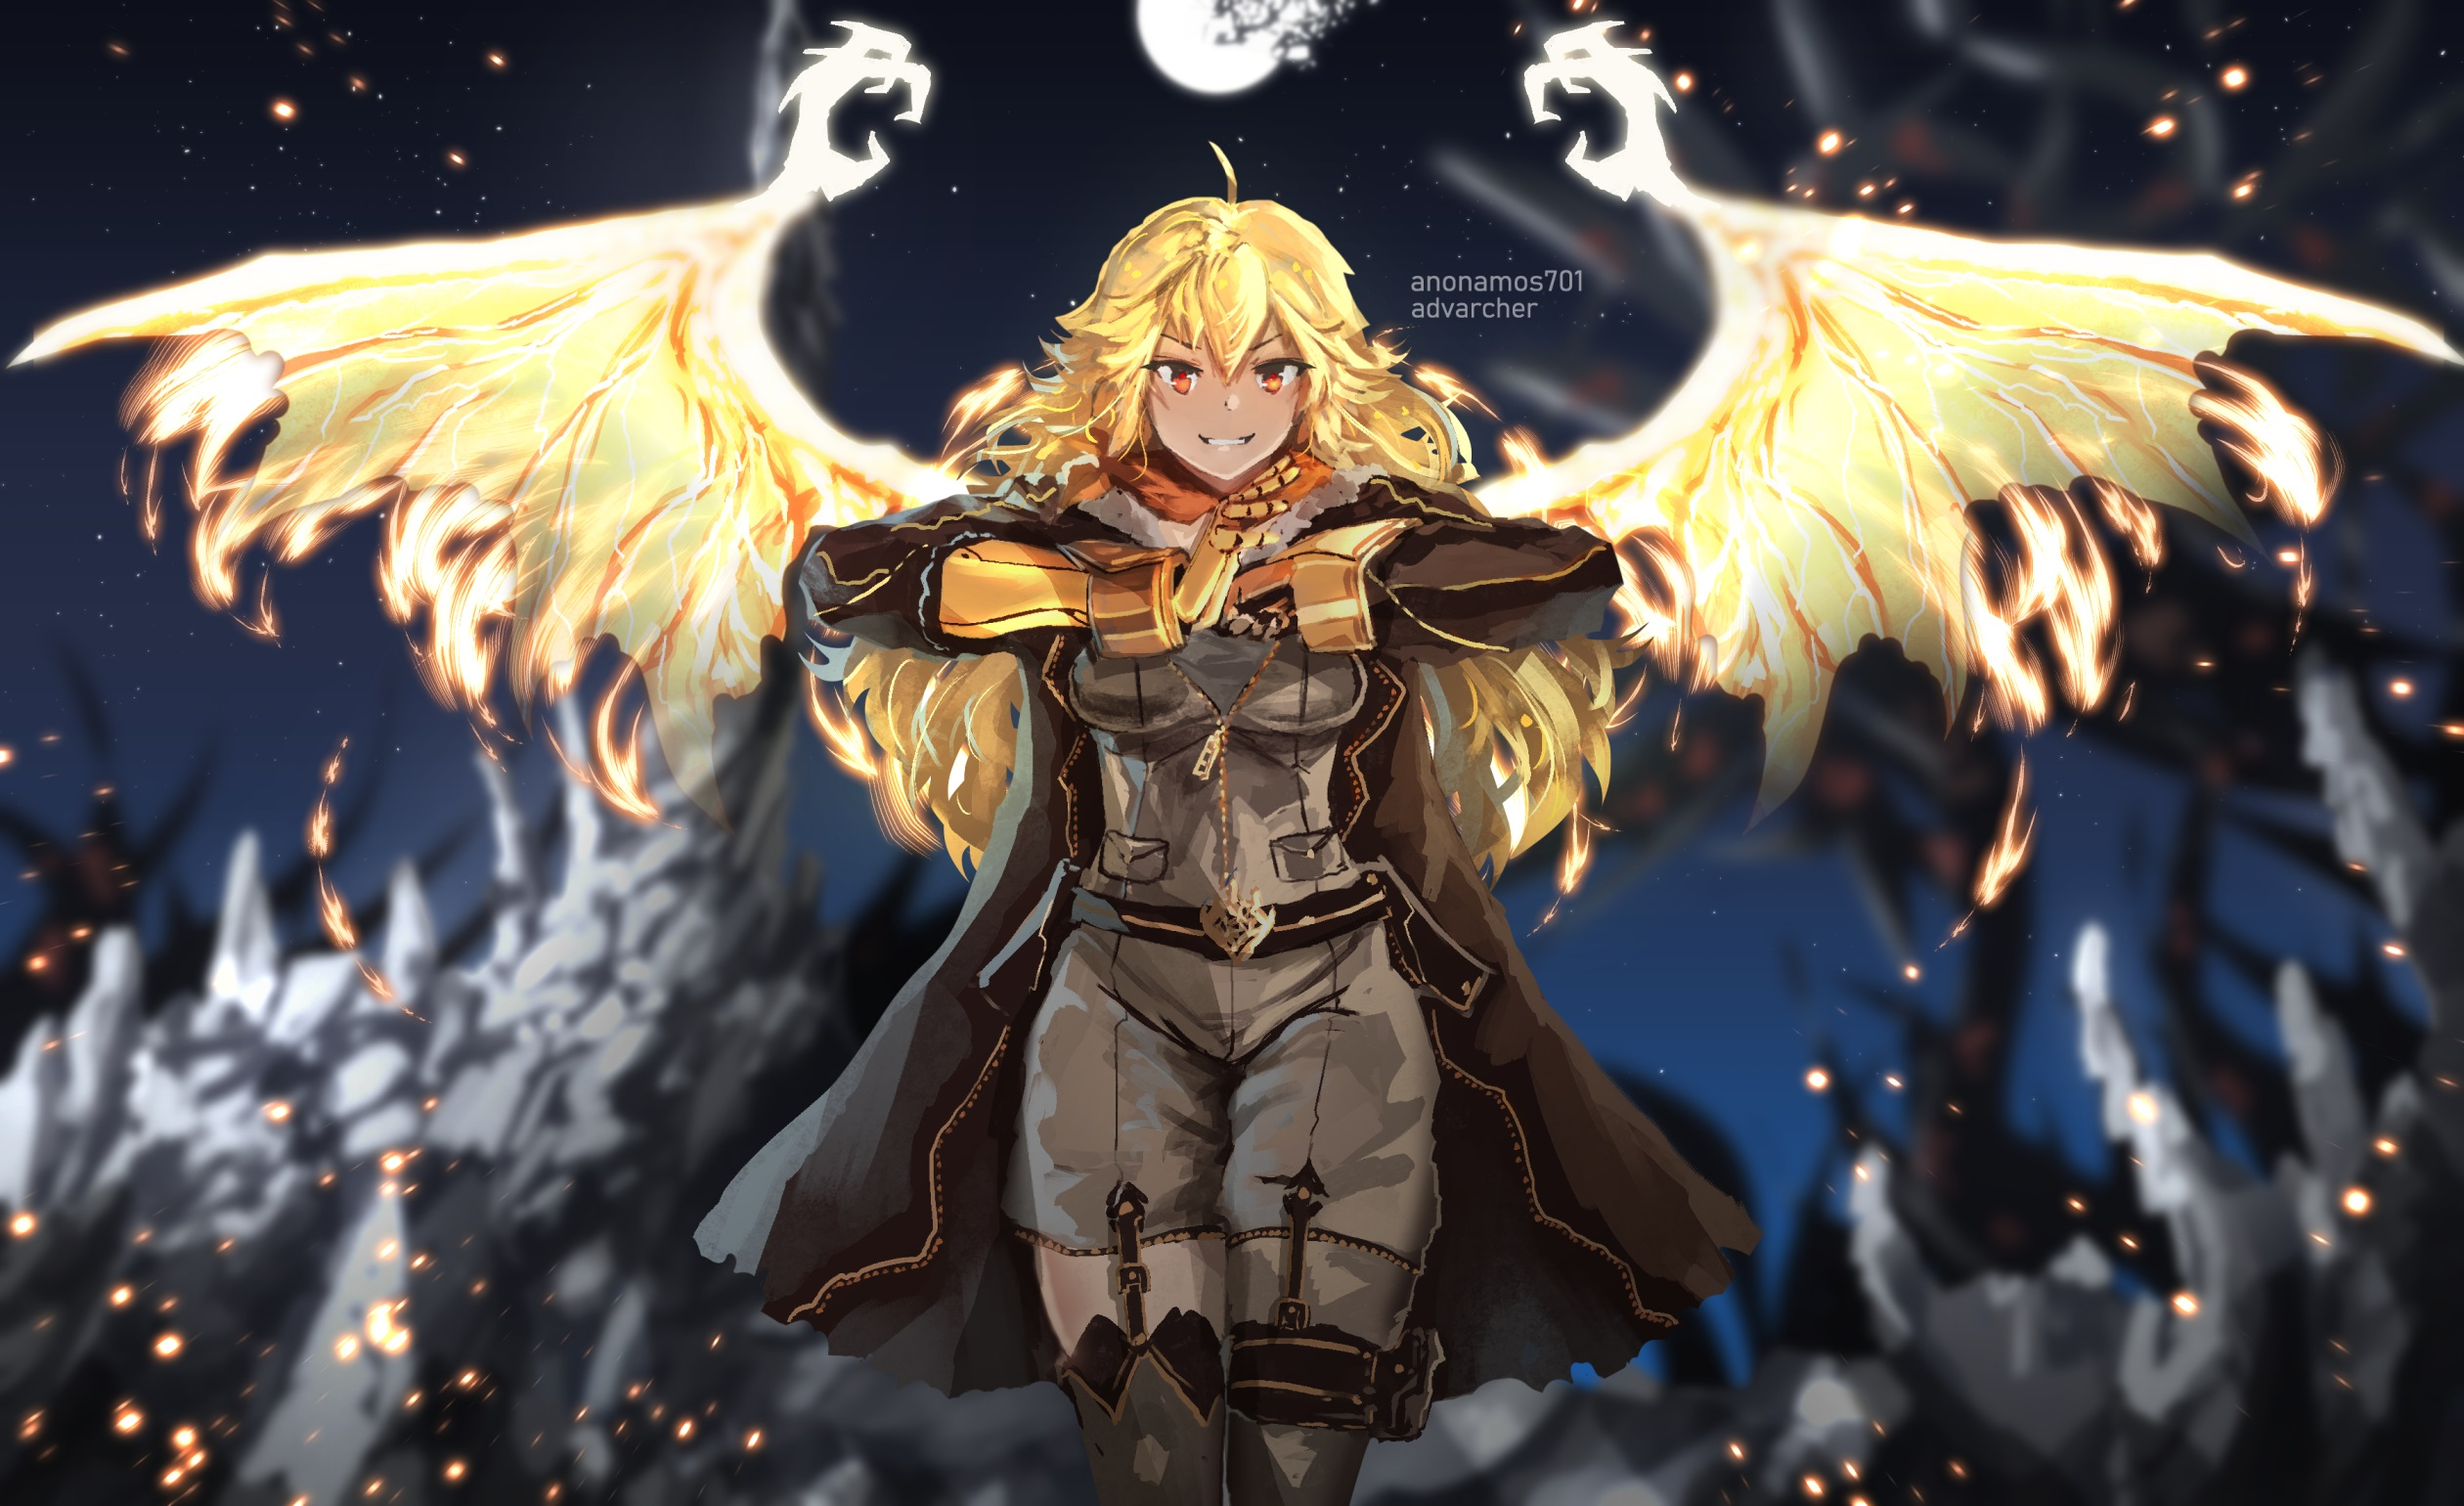 Rwby Anime Girls Digital Art Fan Art Yang Xiao Long Gauntlets Artwork Long Hair Yellow Hair Orange E Wallpaper Resolution 2520x1540 Id 159149 Wallha Com